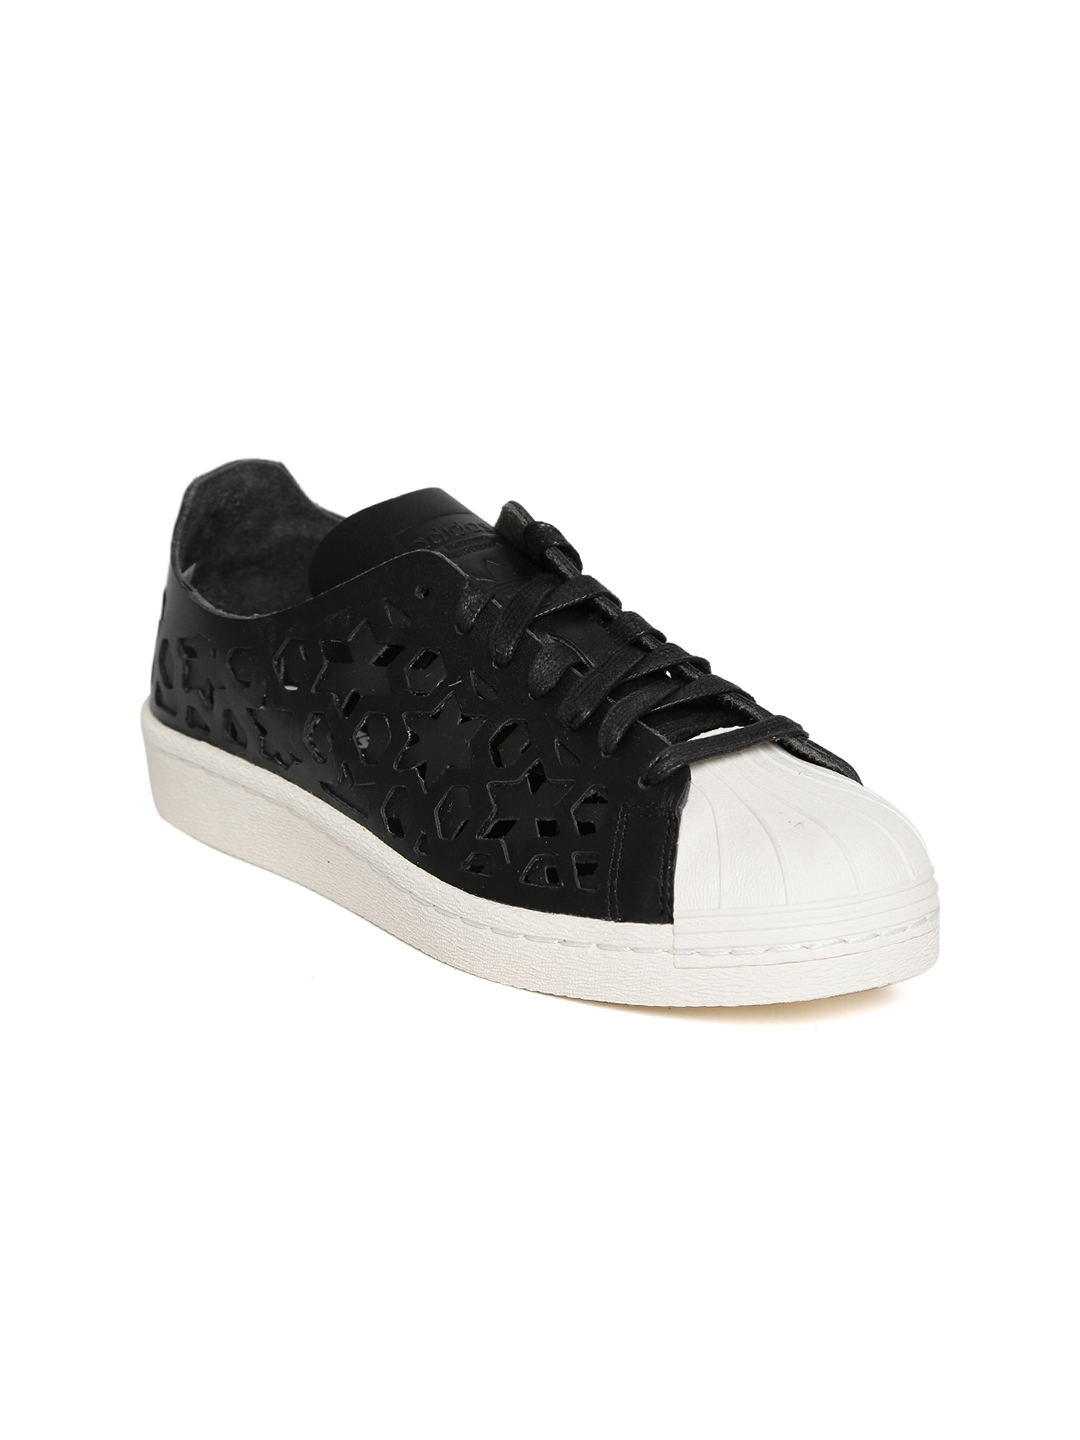 new concept cdd13 d1cc2 ADIDAS Originals Women Black Superstar 80S Cut Out Leather Sneakers